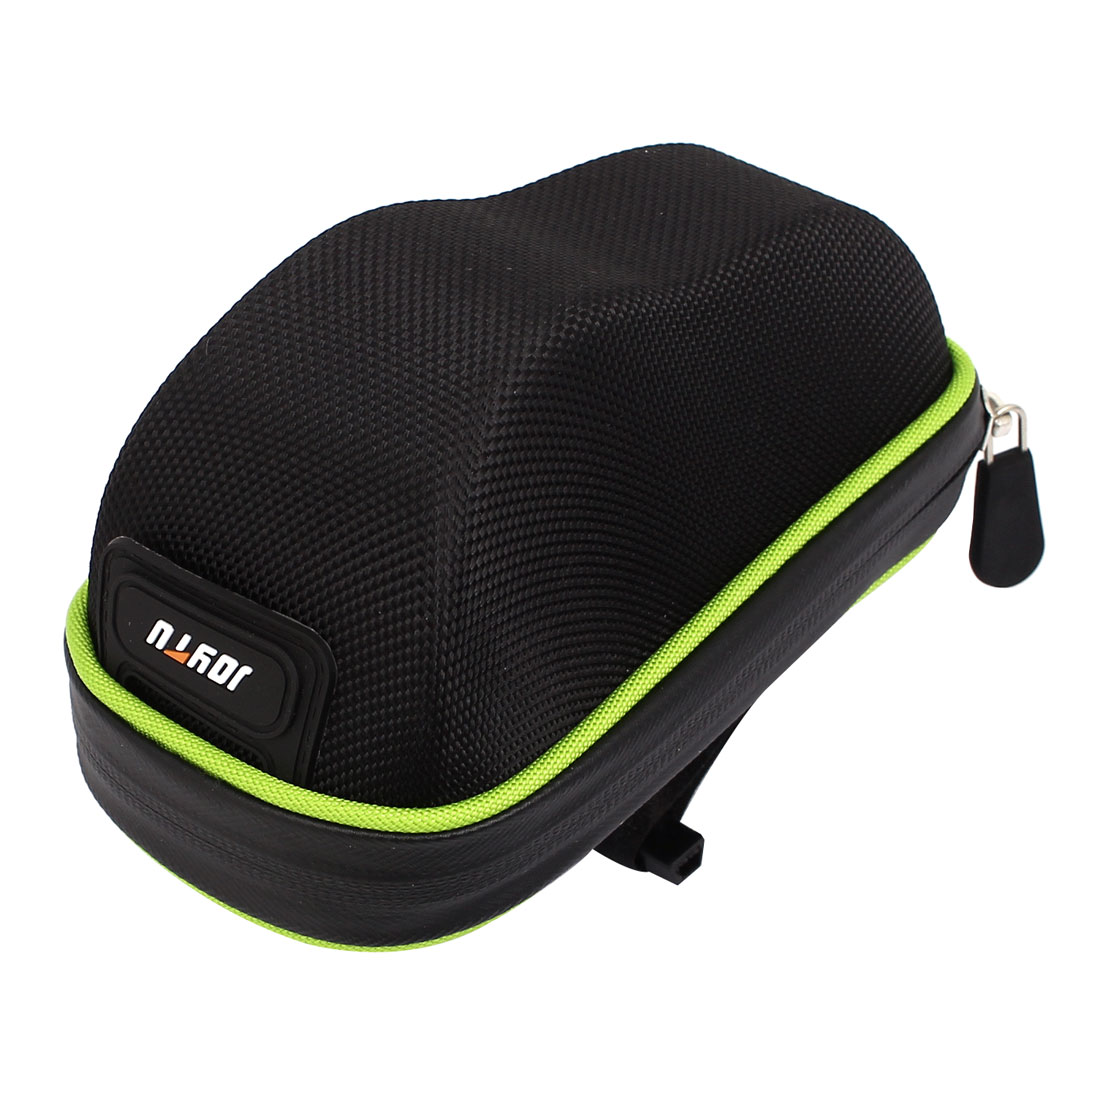 Bike Cycling Bicycle Topeak Wedge Pannier Seat Rear Saddle Bag Pouch Black Green